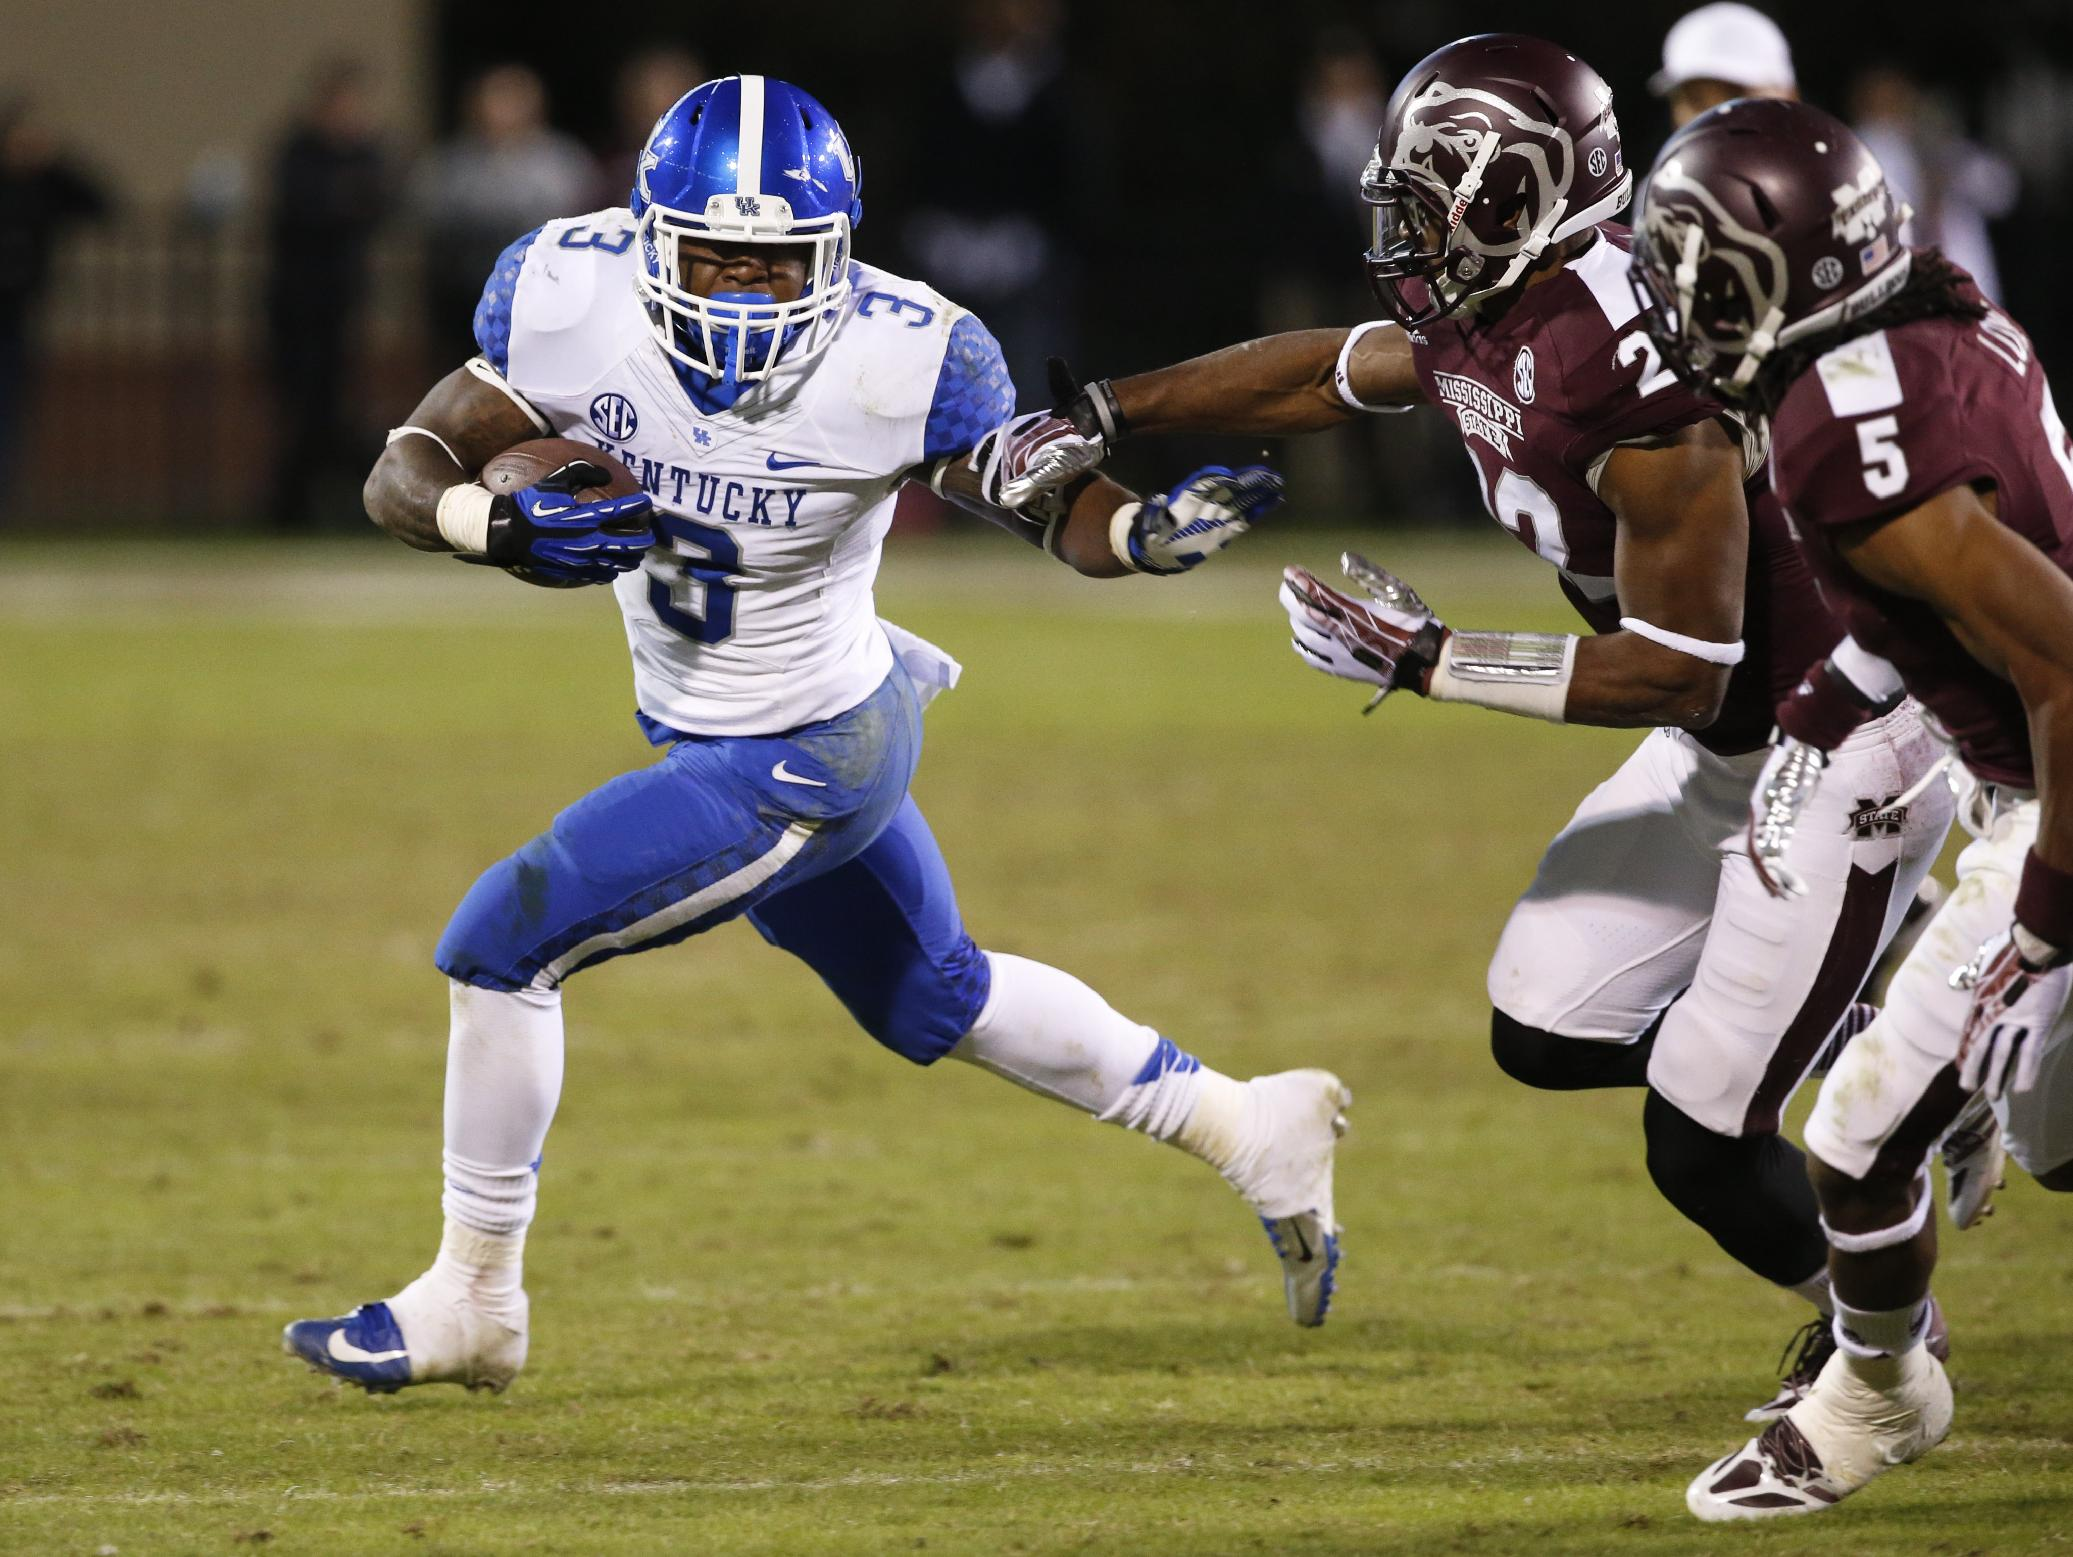 Kentucky running back Jojo Kemp (3) attempts to outrun Mississippi State linebacker Matthew Wells (22) and  defensive back Jamerson Love (5) in the second half of their NCAA college football game at Davis Wade Stadium in Starkville, Miss., Thursday, Oct. 24, 2013. Mississippi State won 28-22